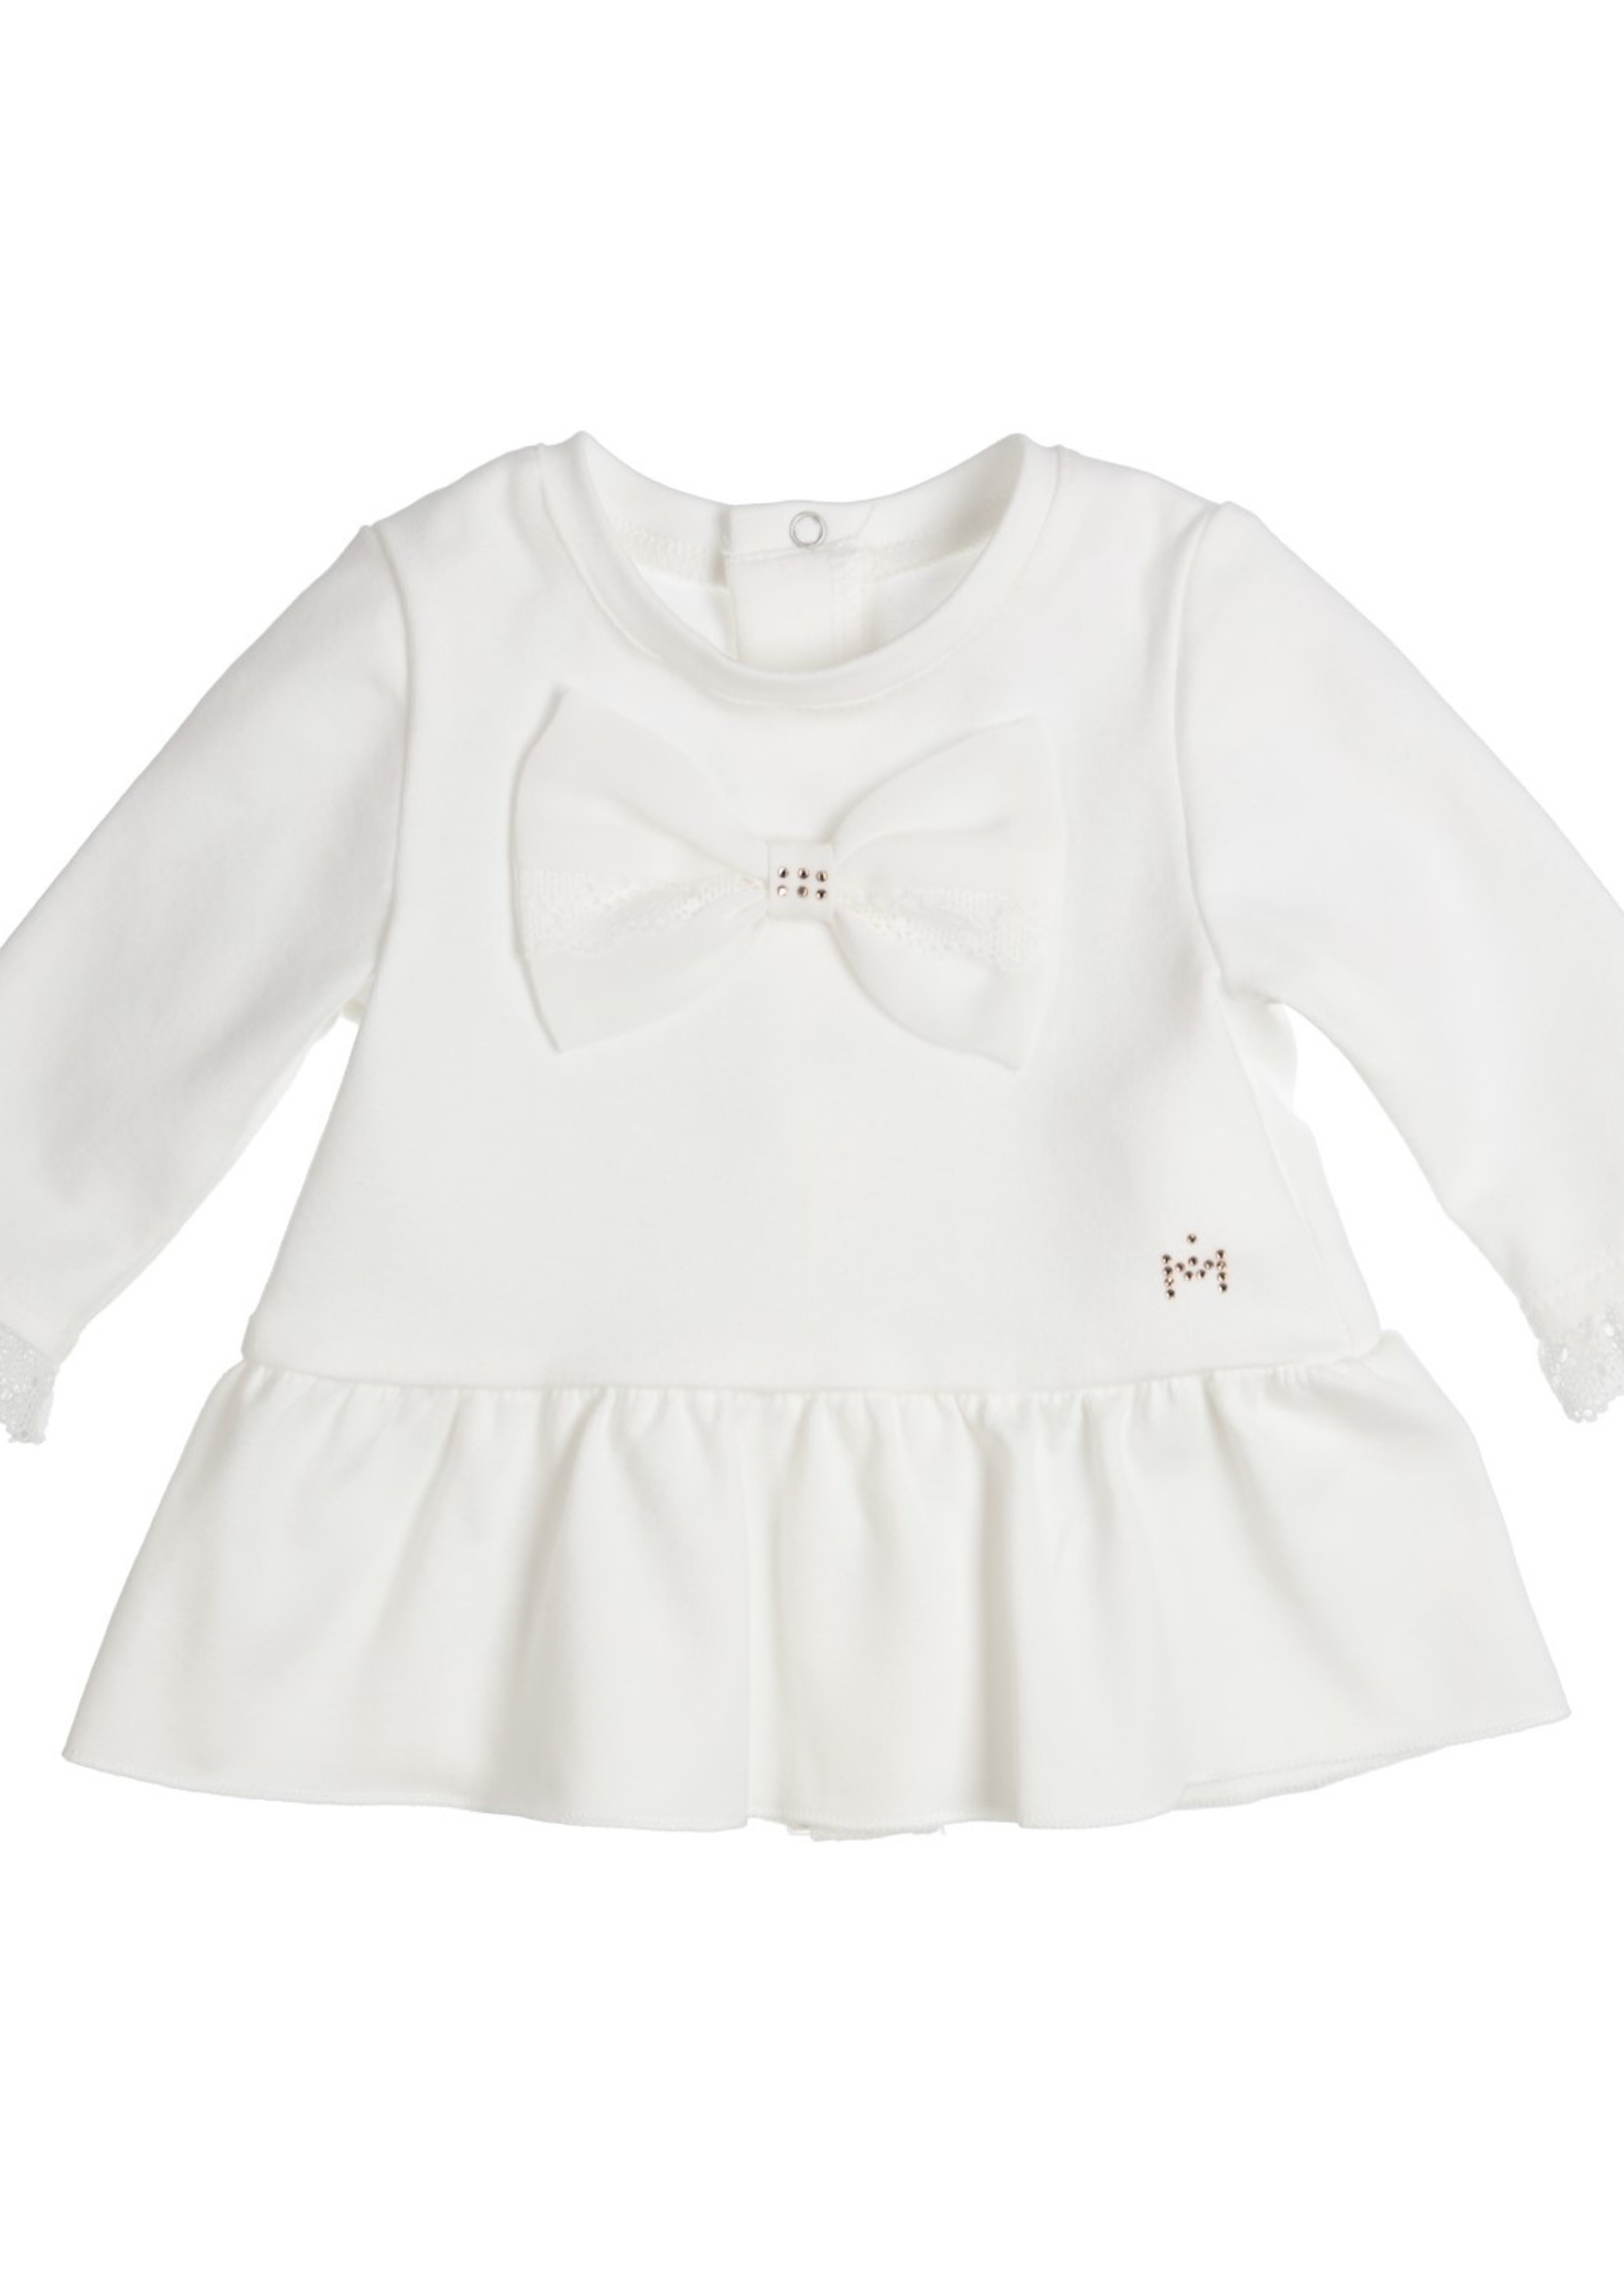 Gymp Gymp tunic with voile bow off-white